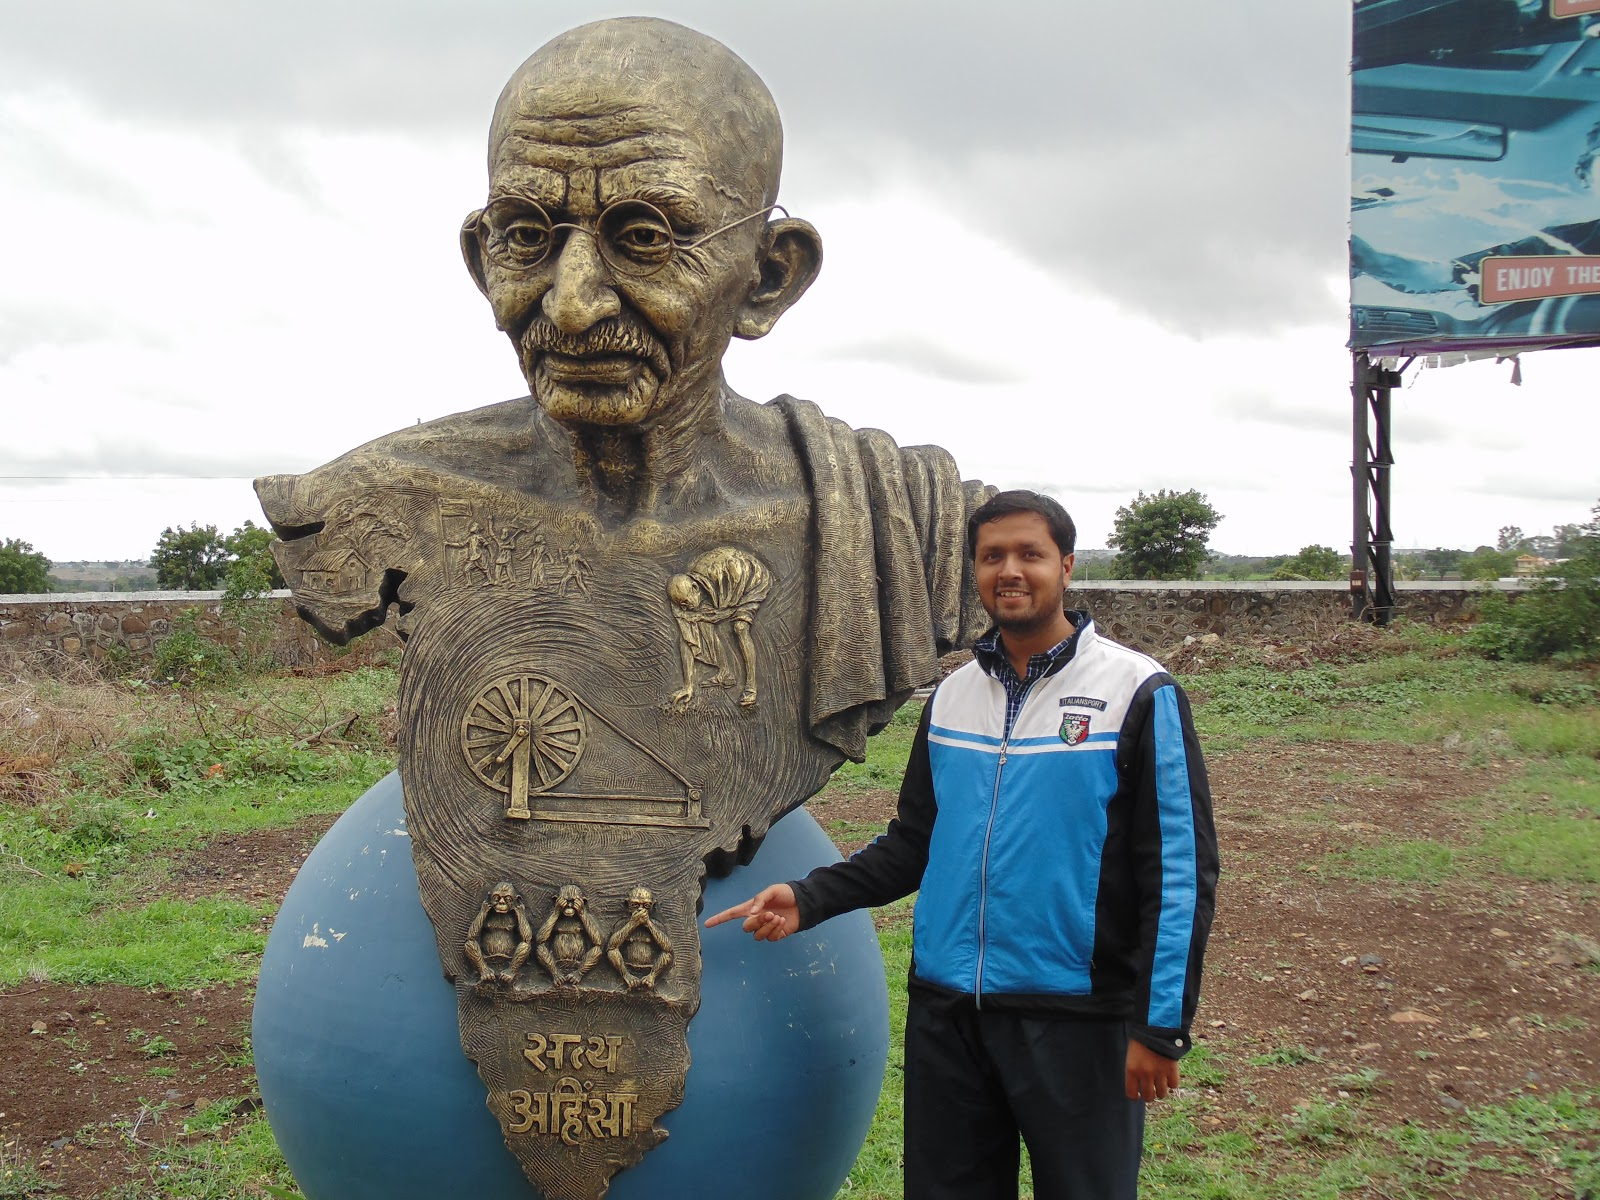 Bike ride from Pune - Ahmednagar - Pune via Kalashri Art Gallery